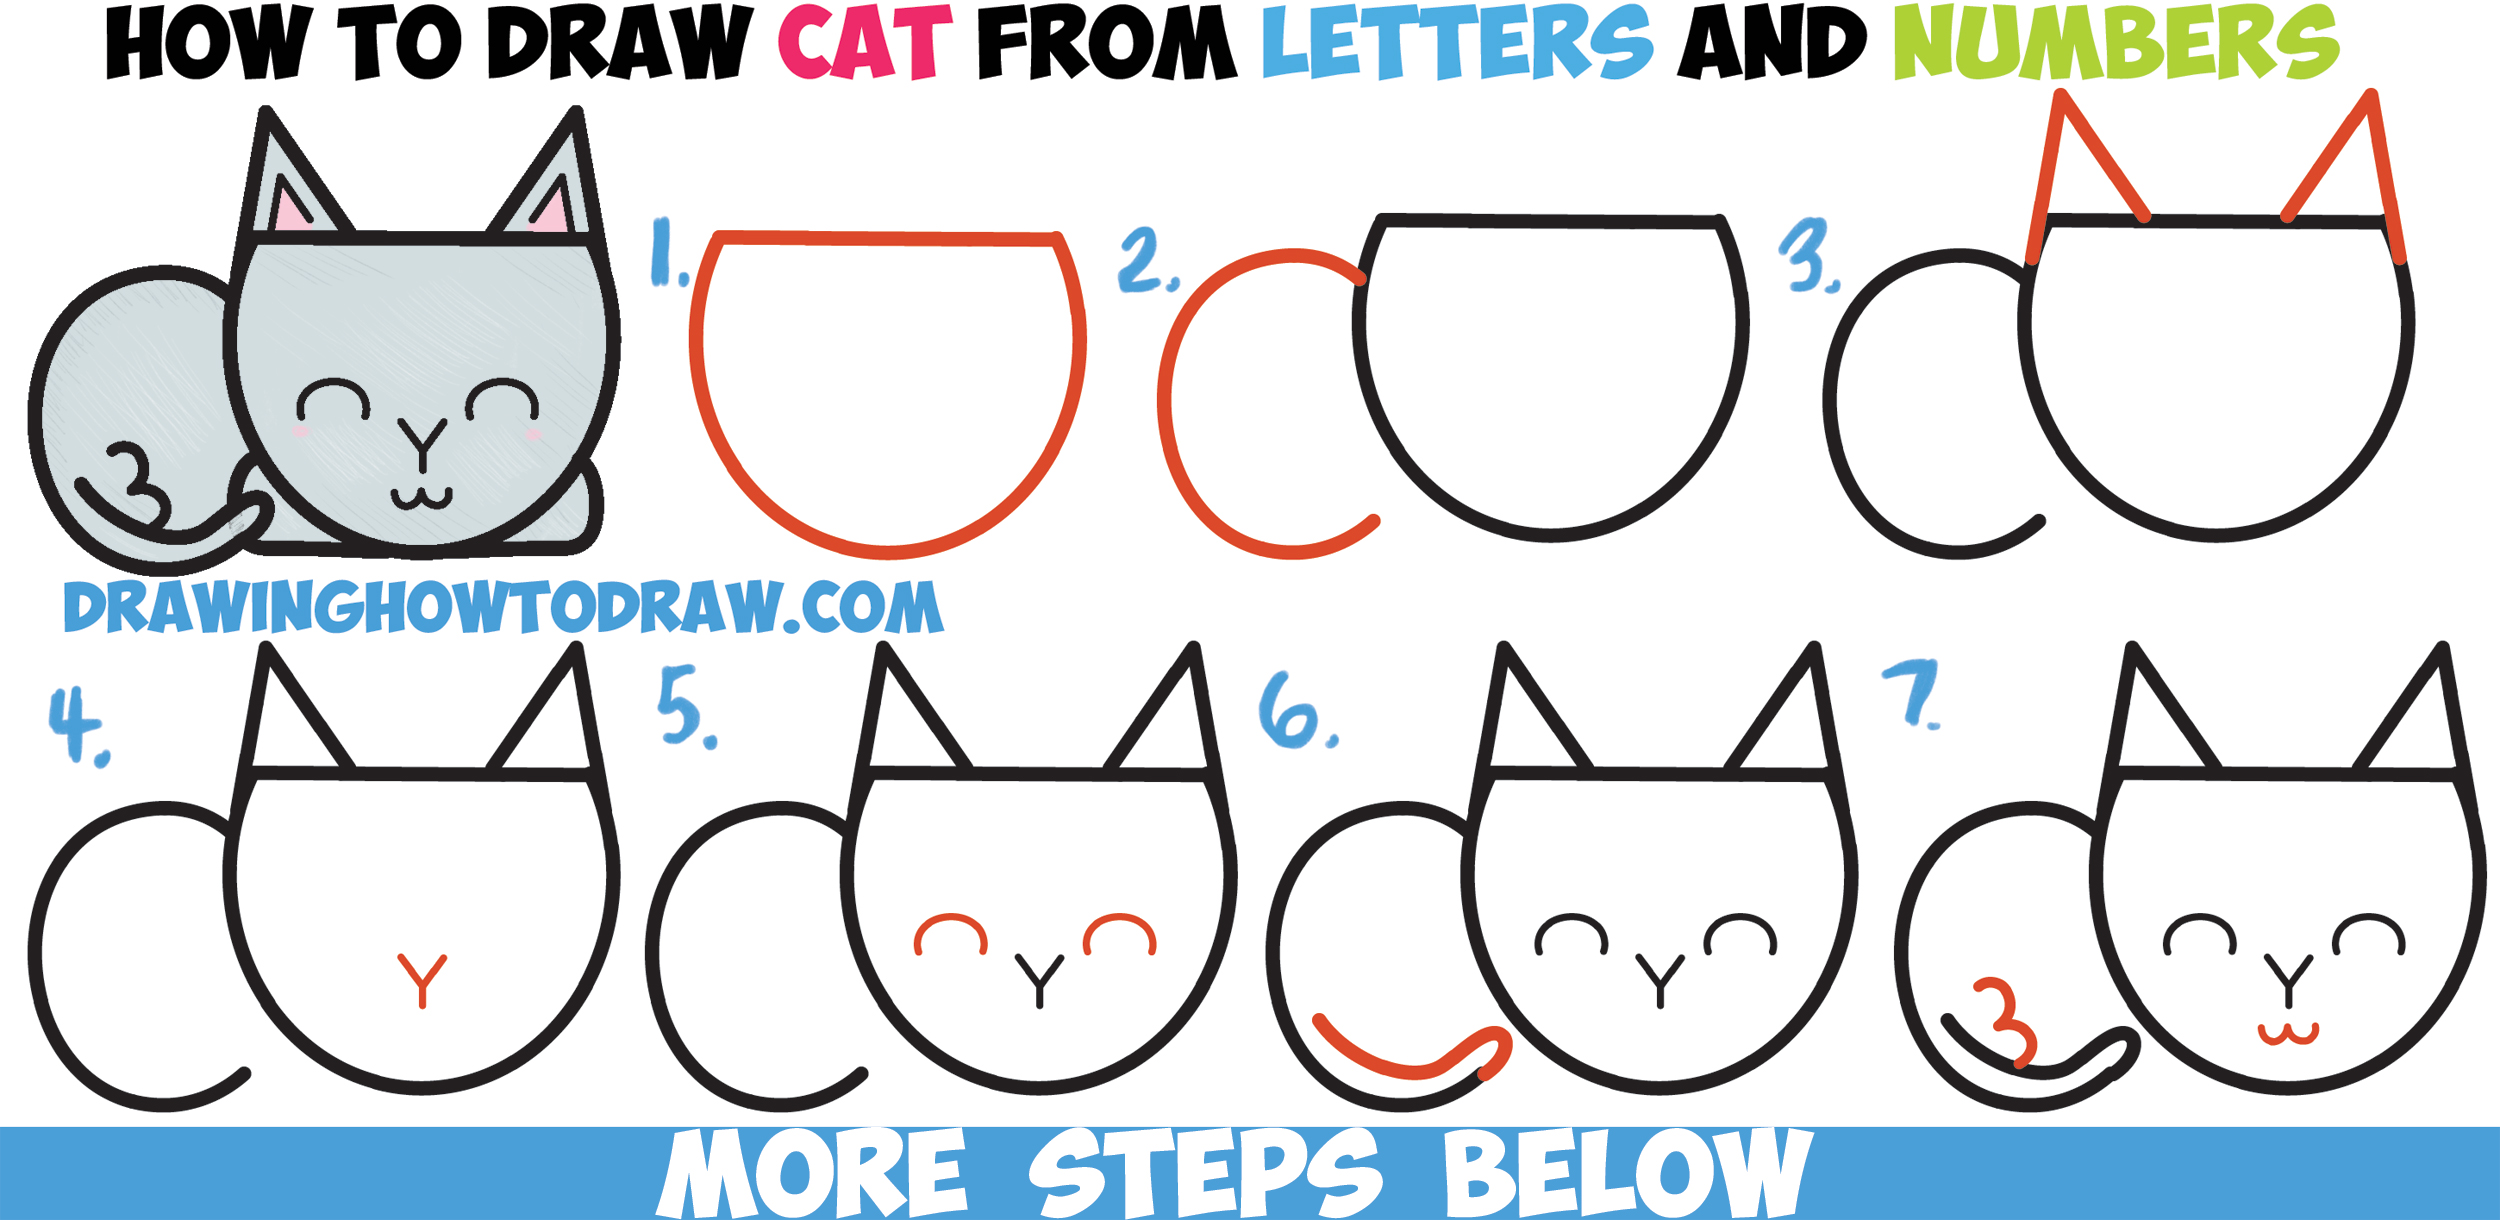 How To Draw A Cute Cartoon Cat Completely From Letters